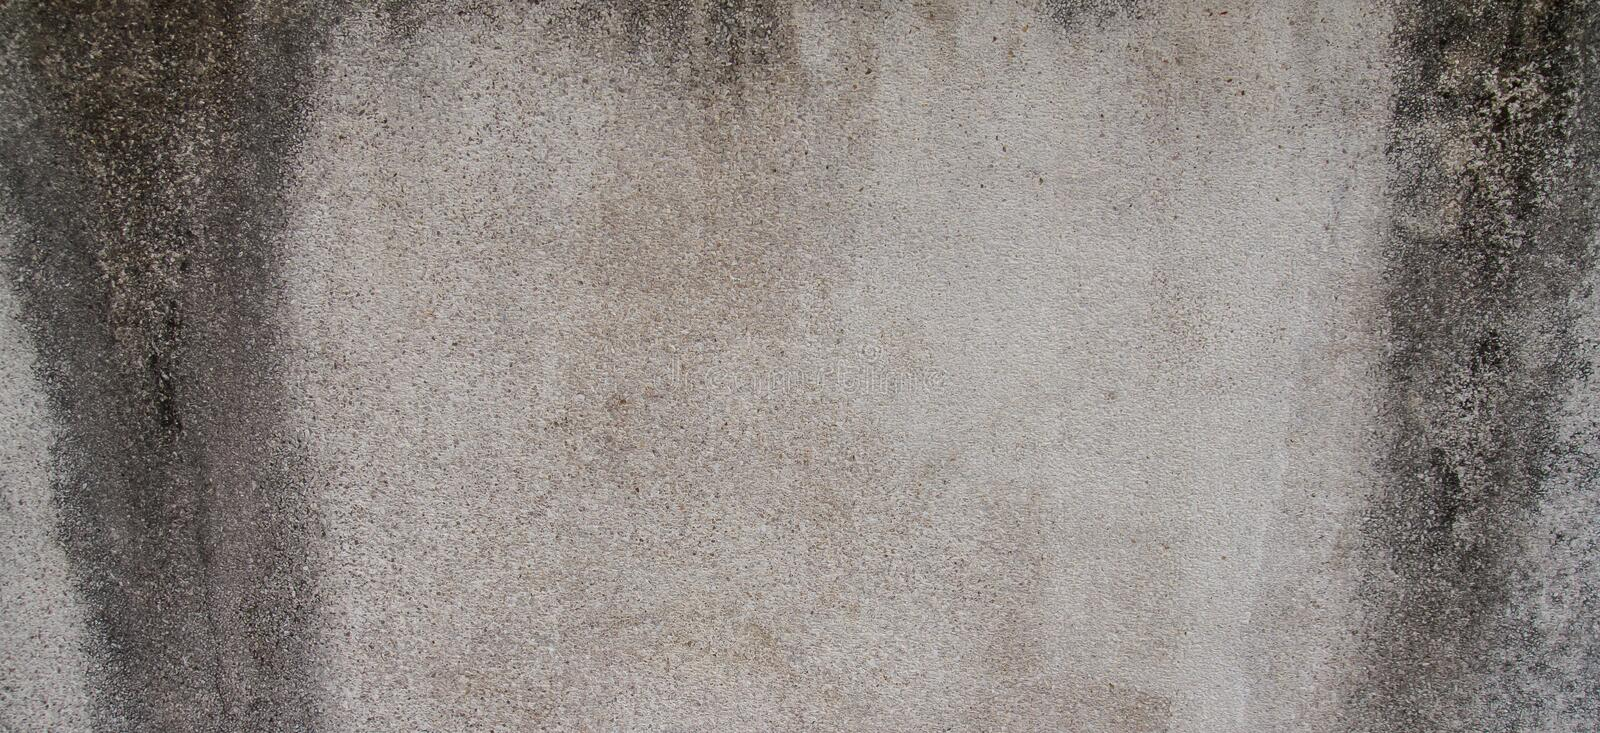 Grunge Cement Surface Texture stock images